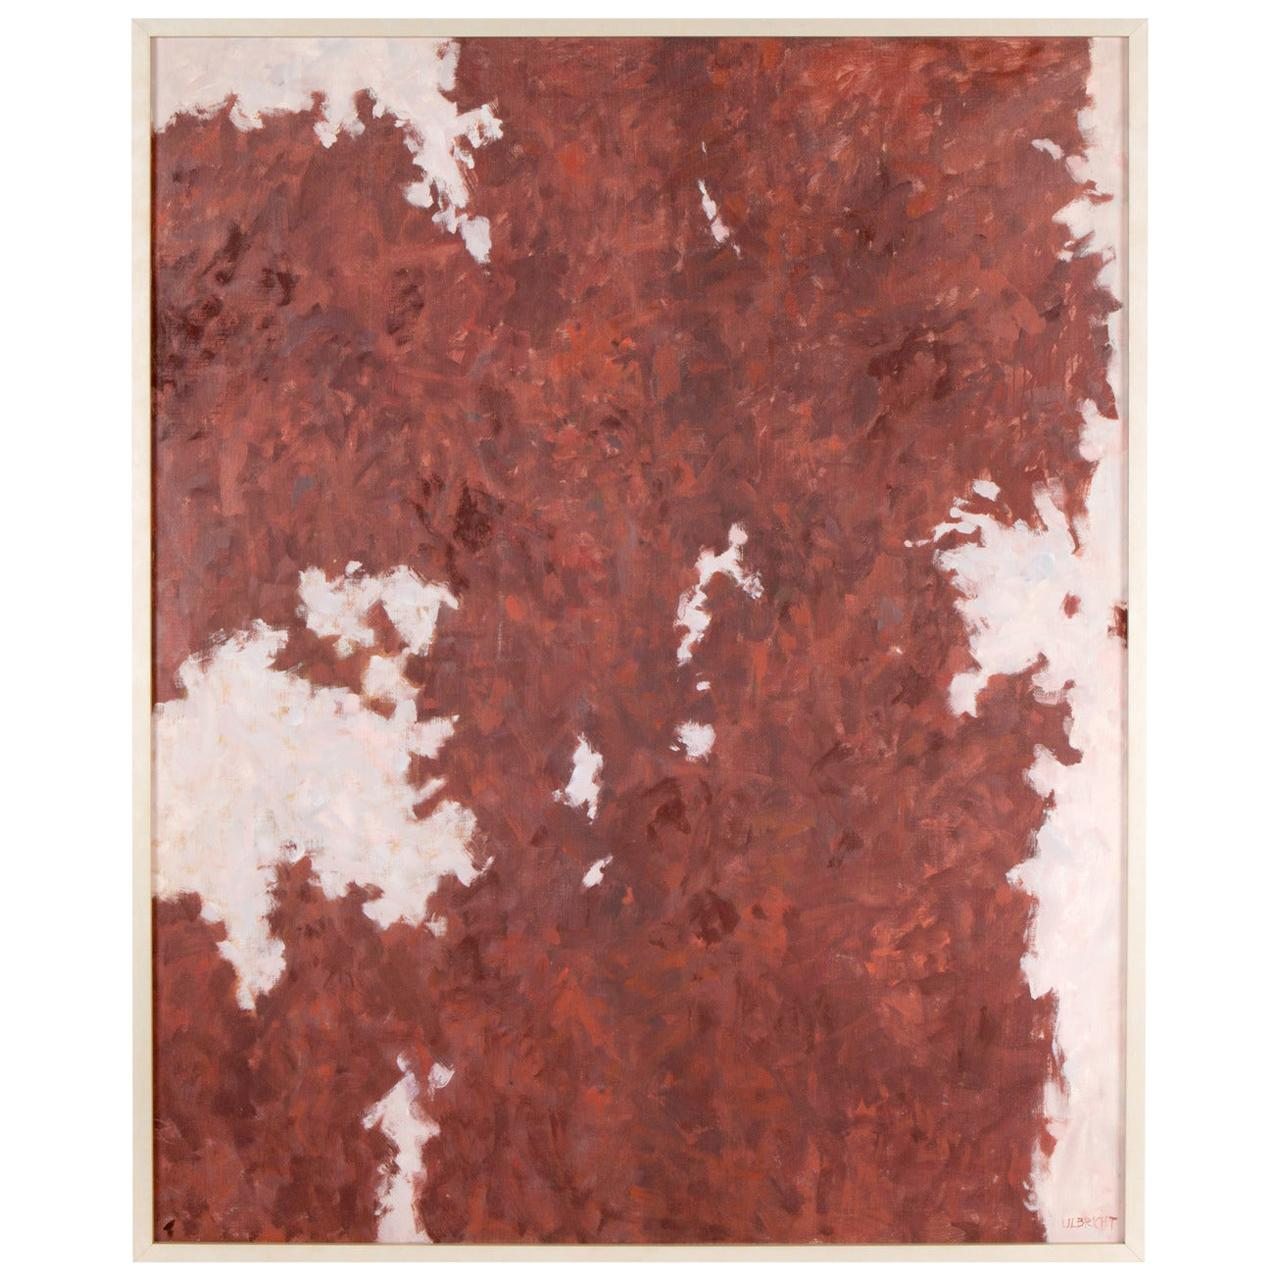 1961 Abstract Oil on Canvas by John Ulbricht